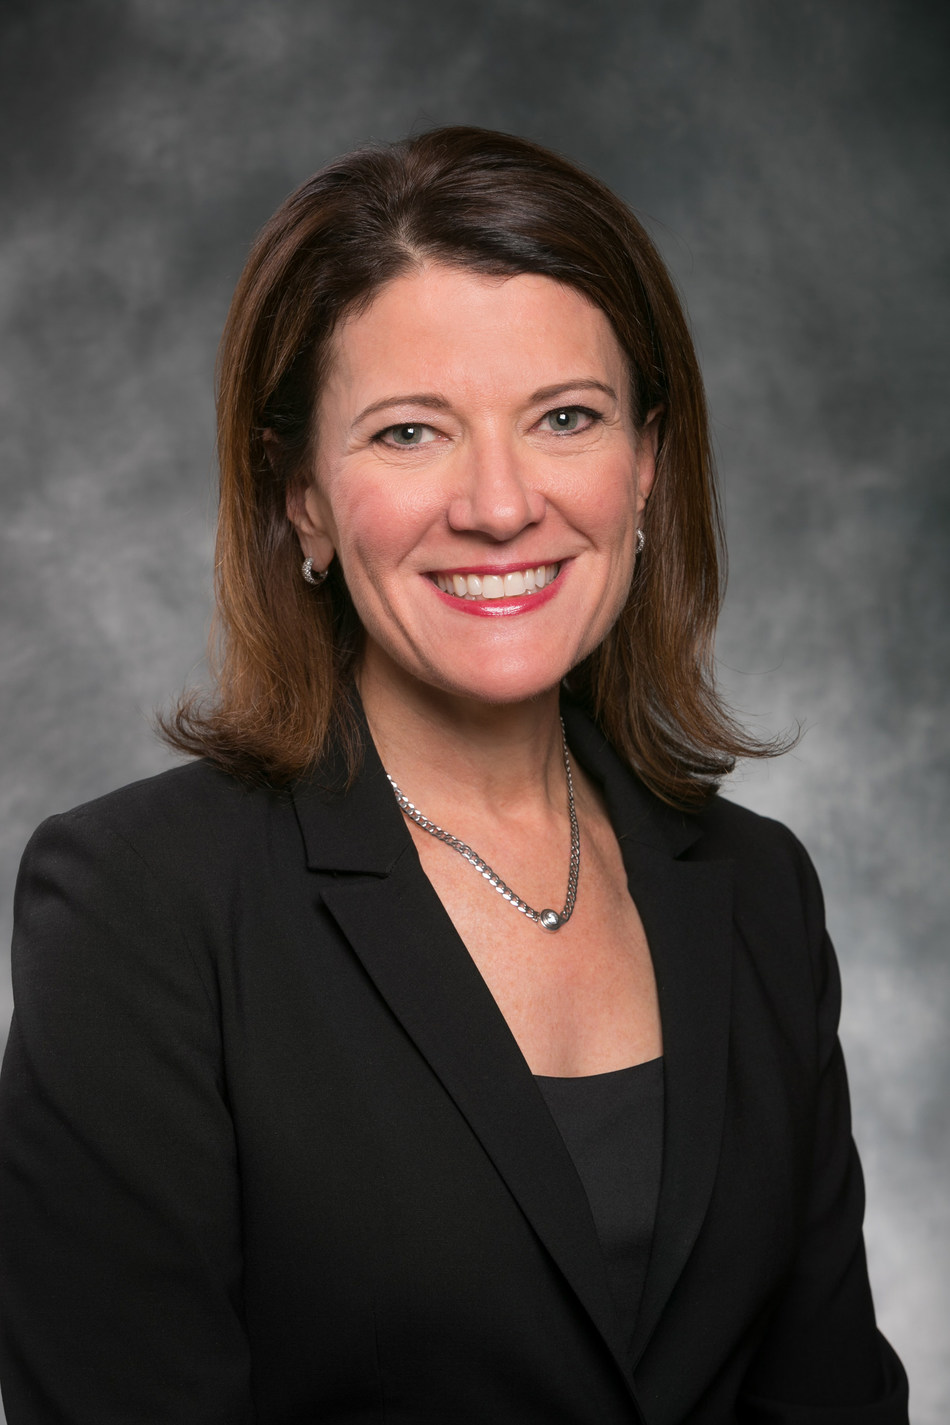 Jennifer Hatton was recently promoted to Executive Vice President of Retail Operations and Course Materials Solutions for Follett Higher Education, and appointed to the Executive Committee of Follett Corporation.